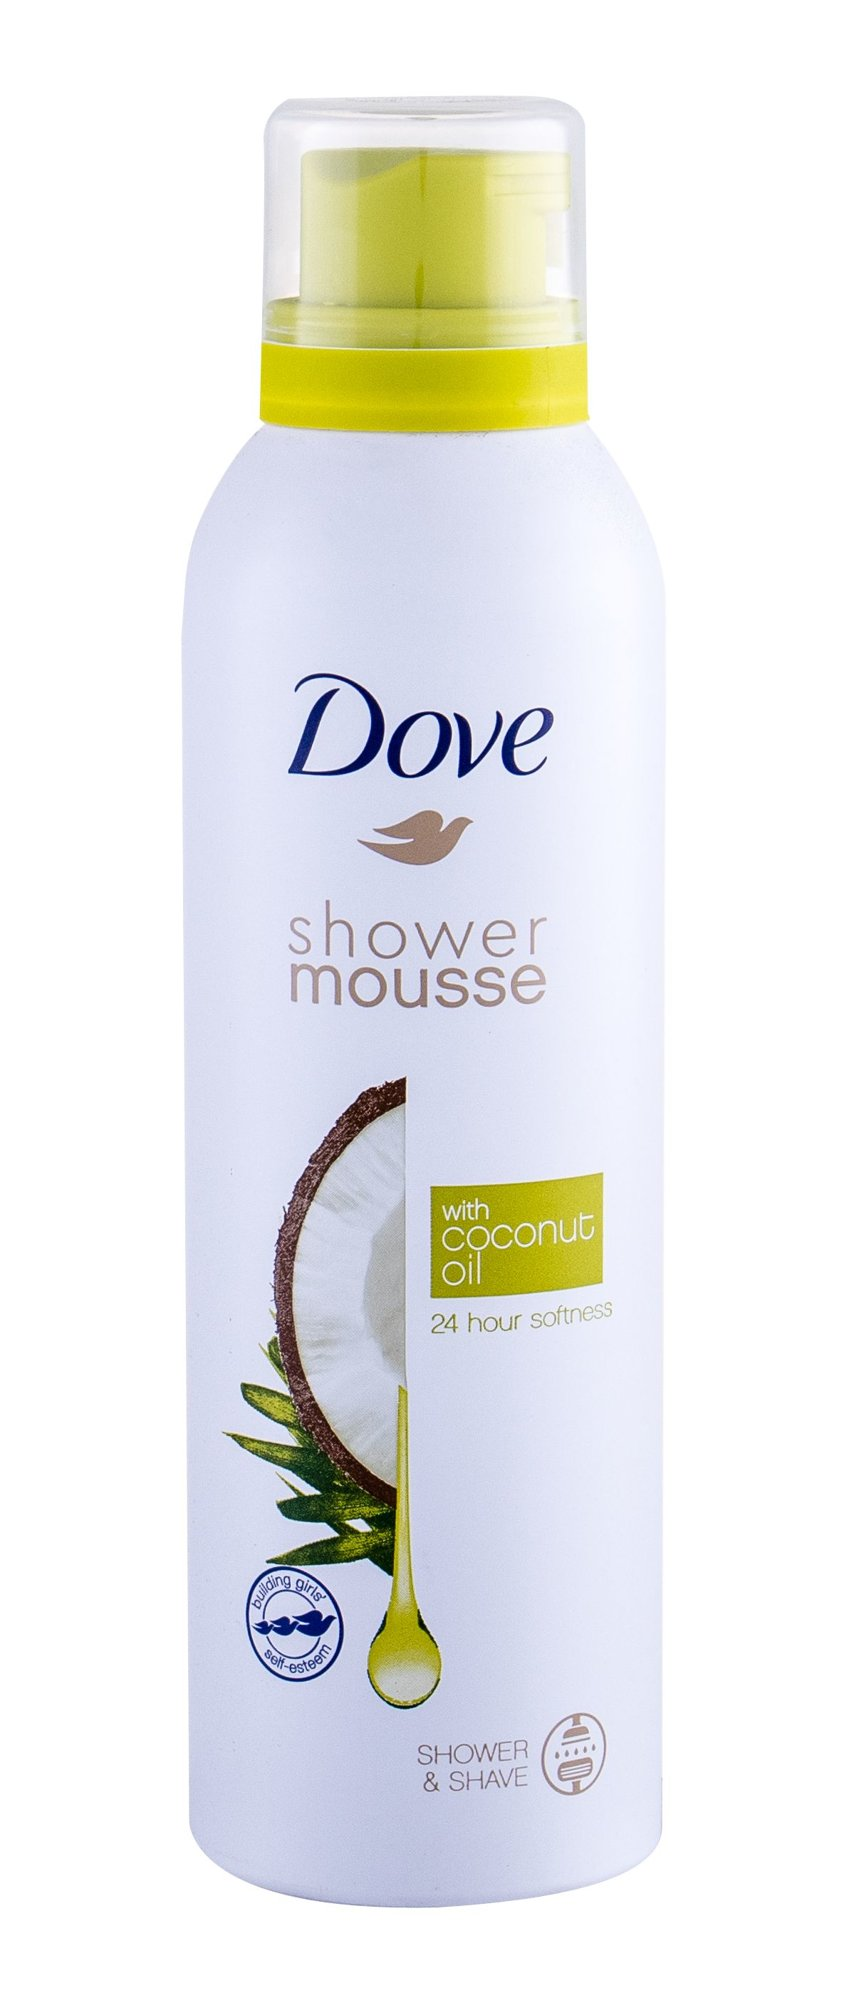 Dove Shower Mousse Coconut Oil, Sprchovacia Hab 200ml